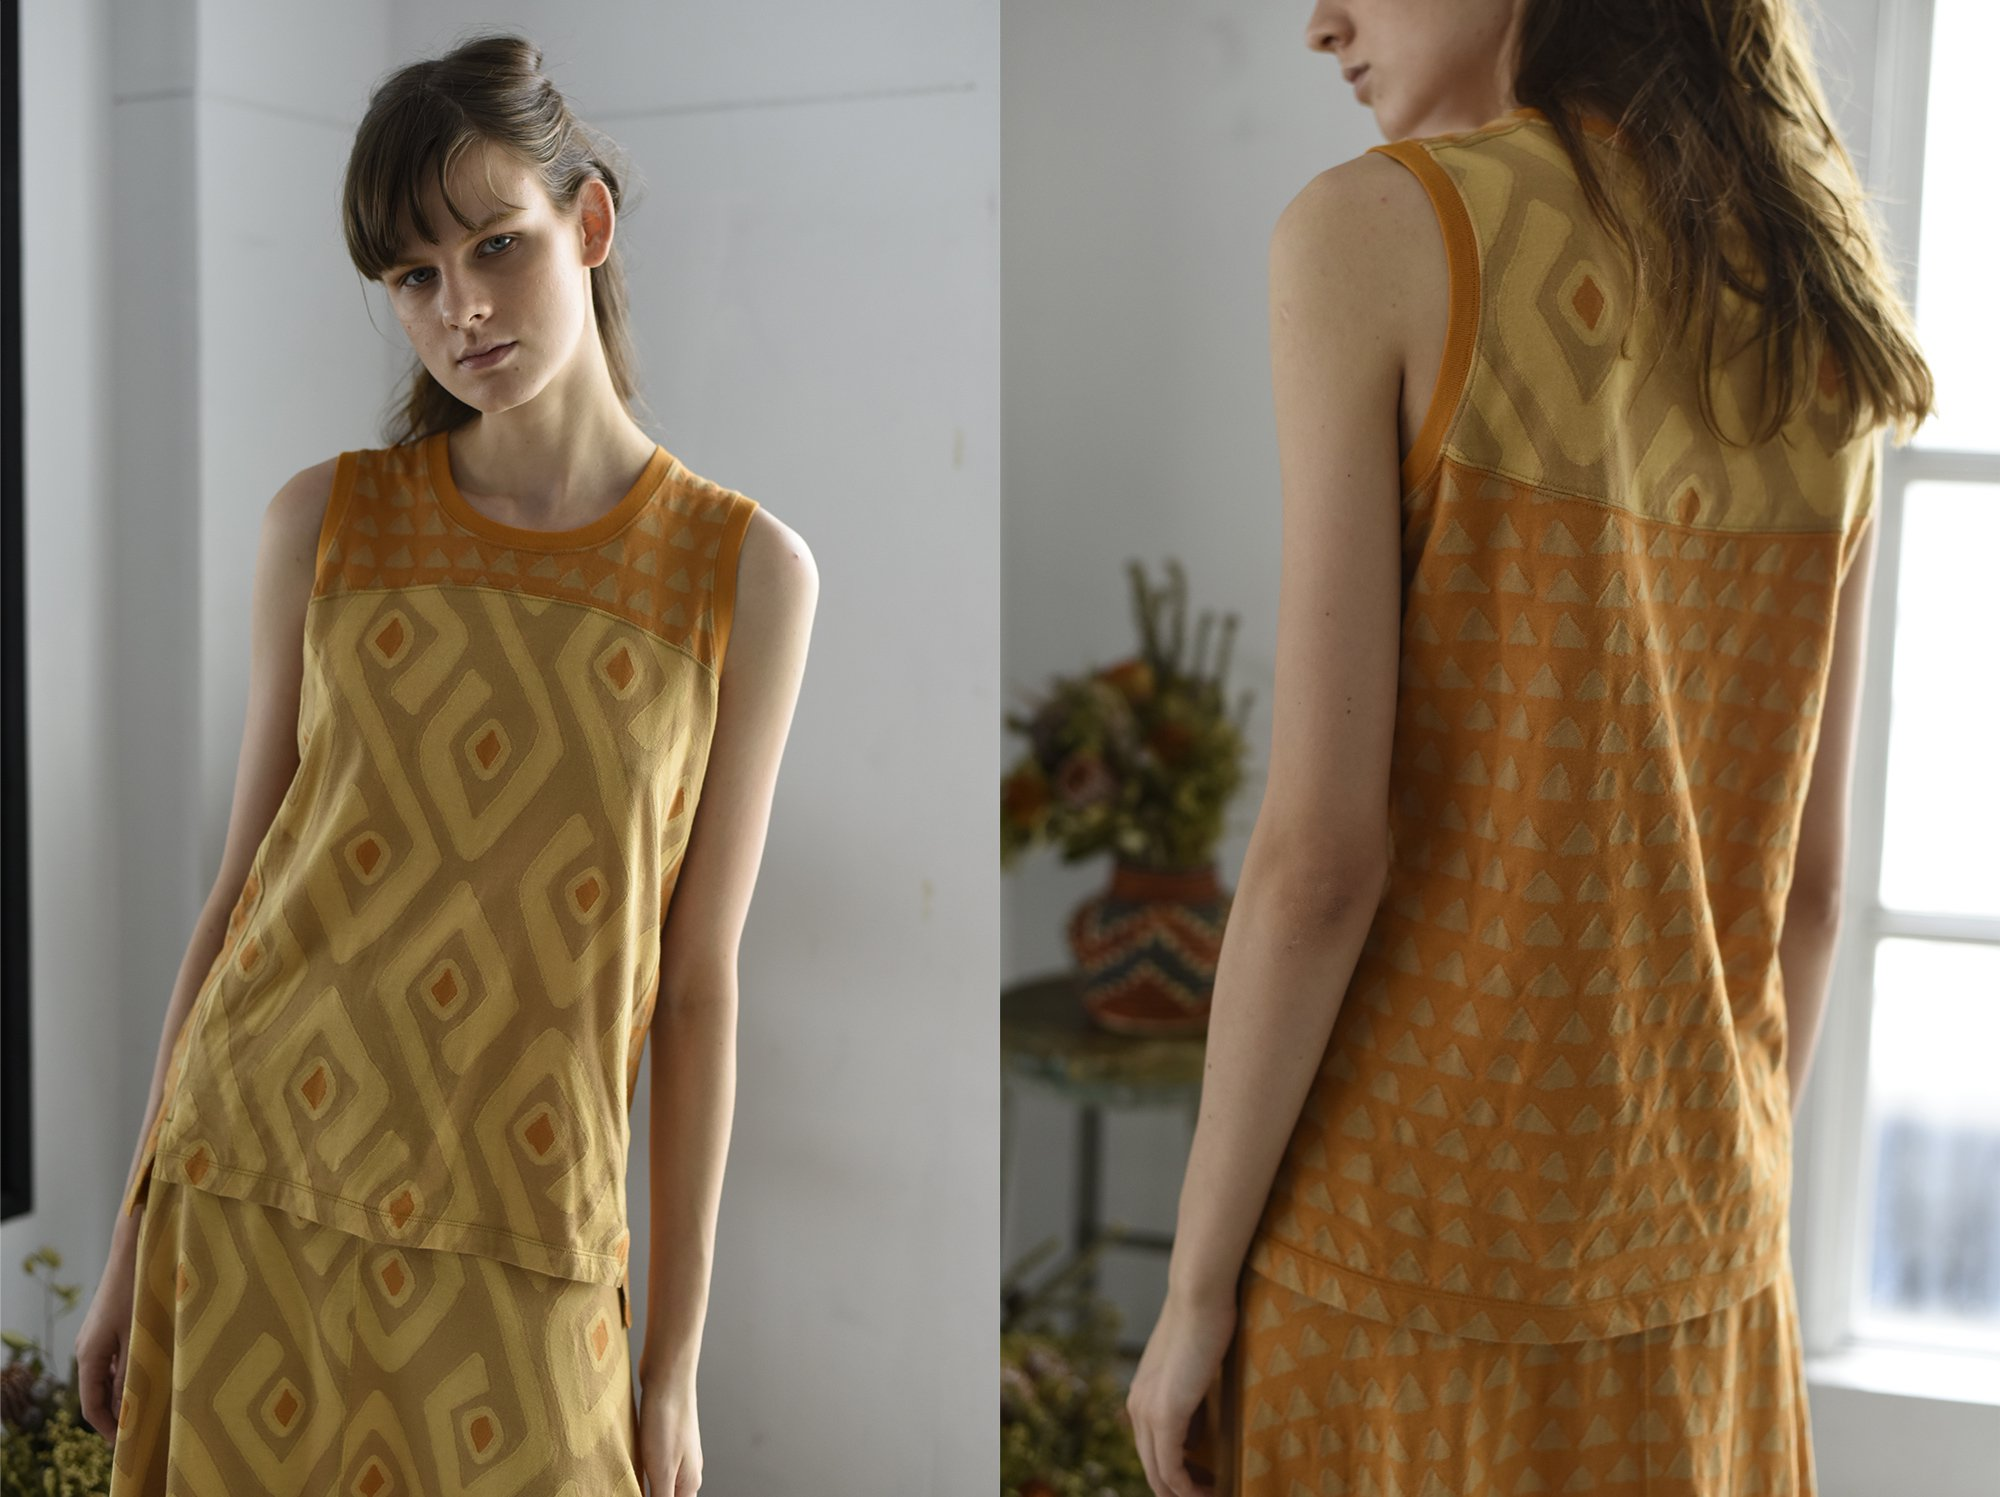 intarsia jacquard jersey sleeveless top